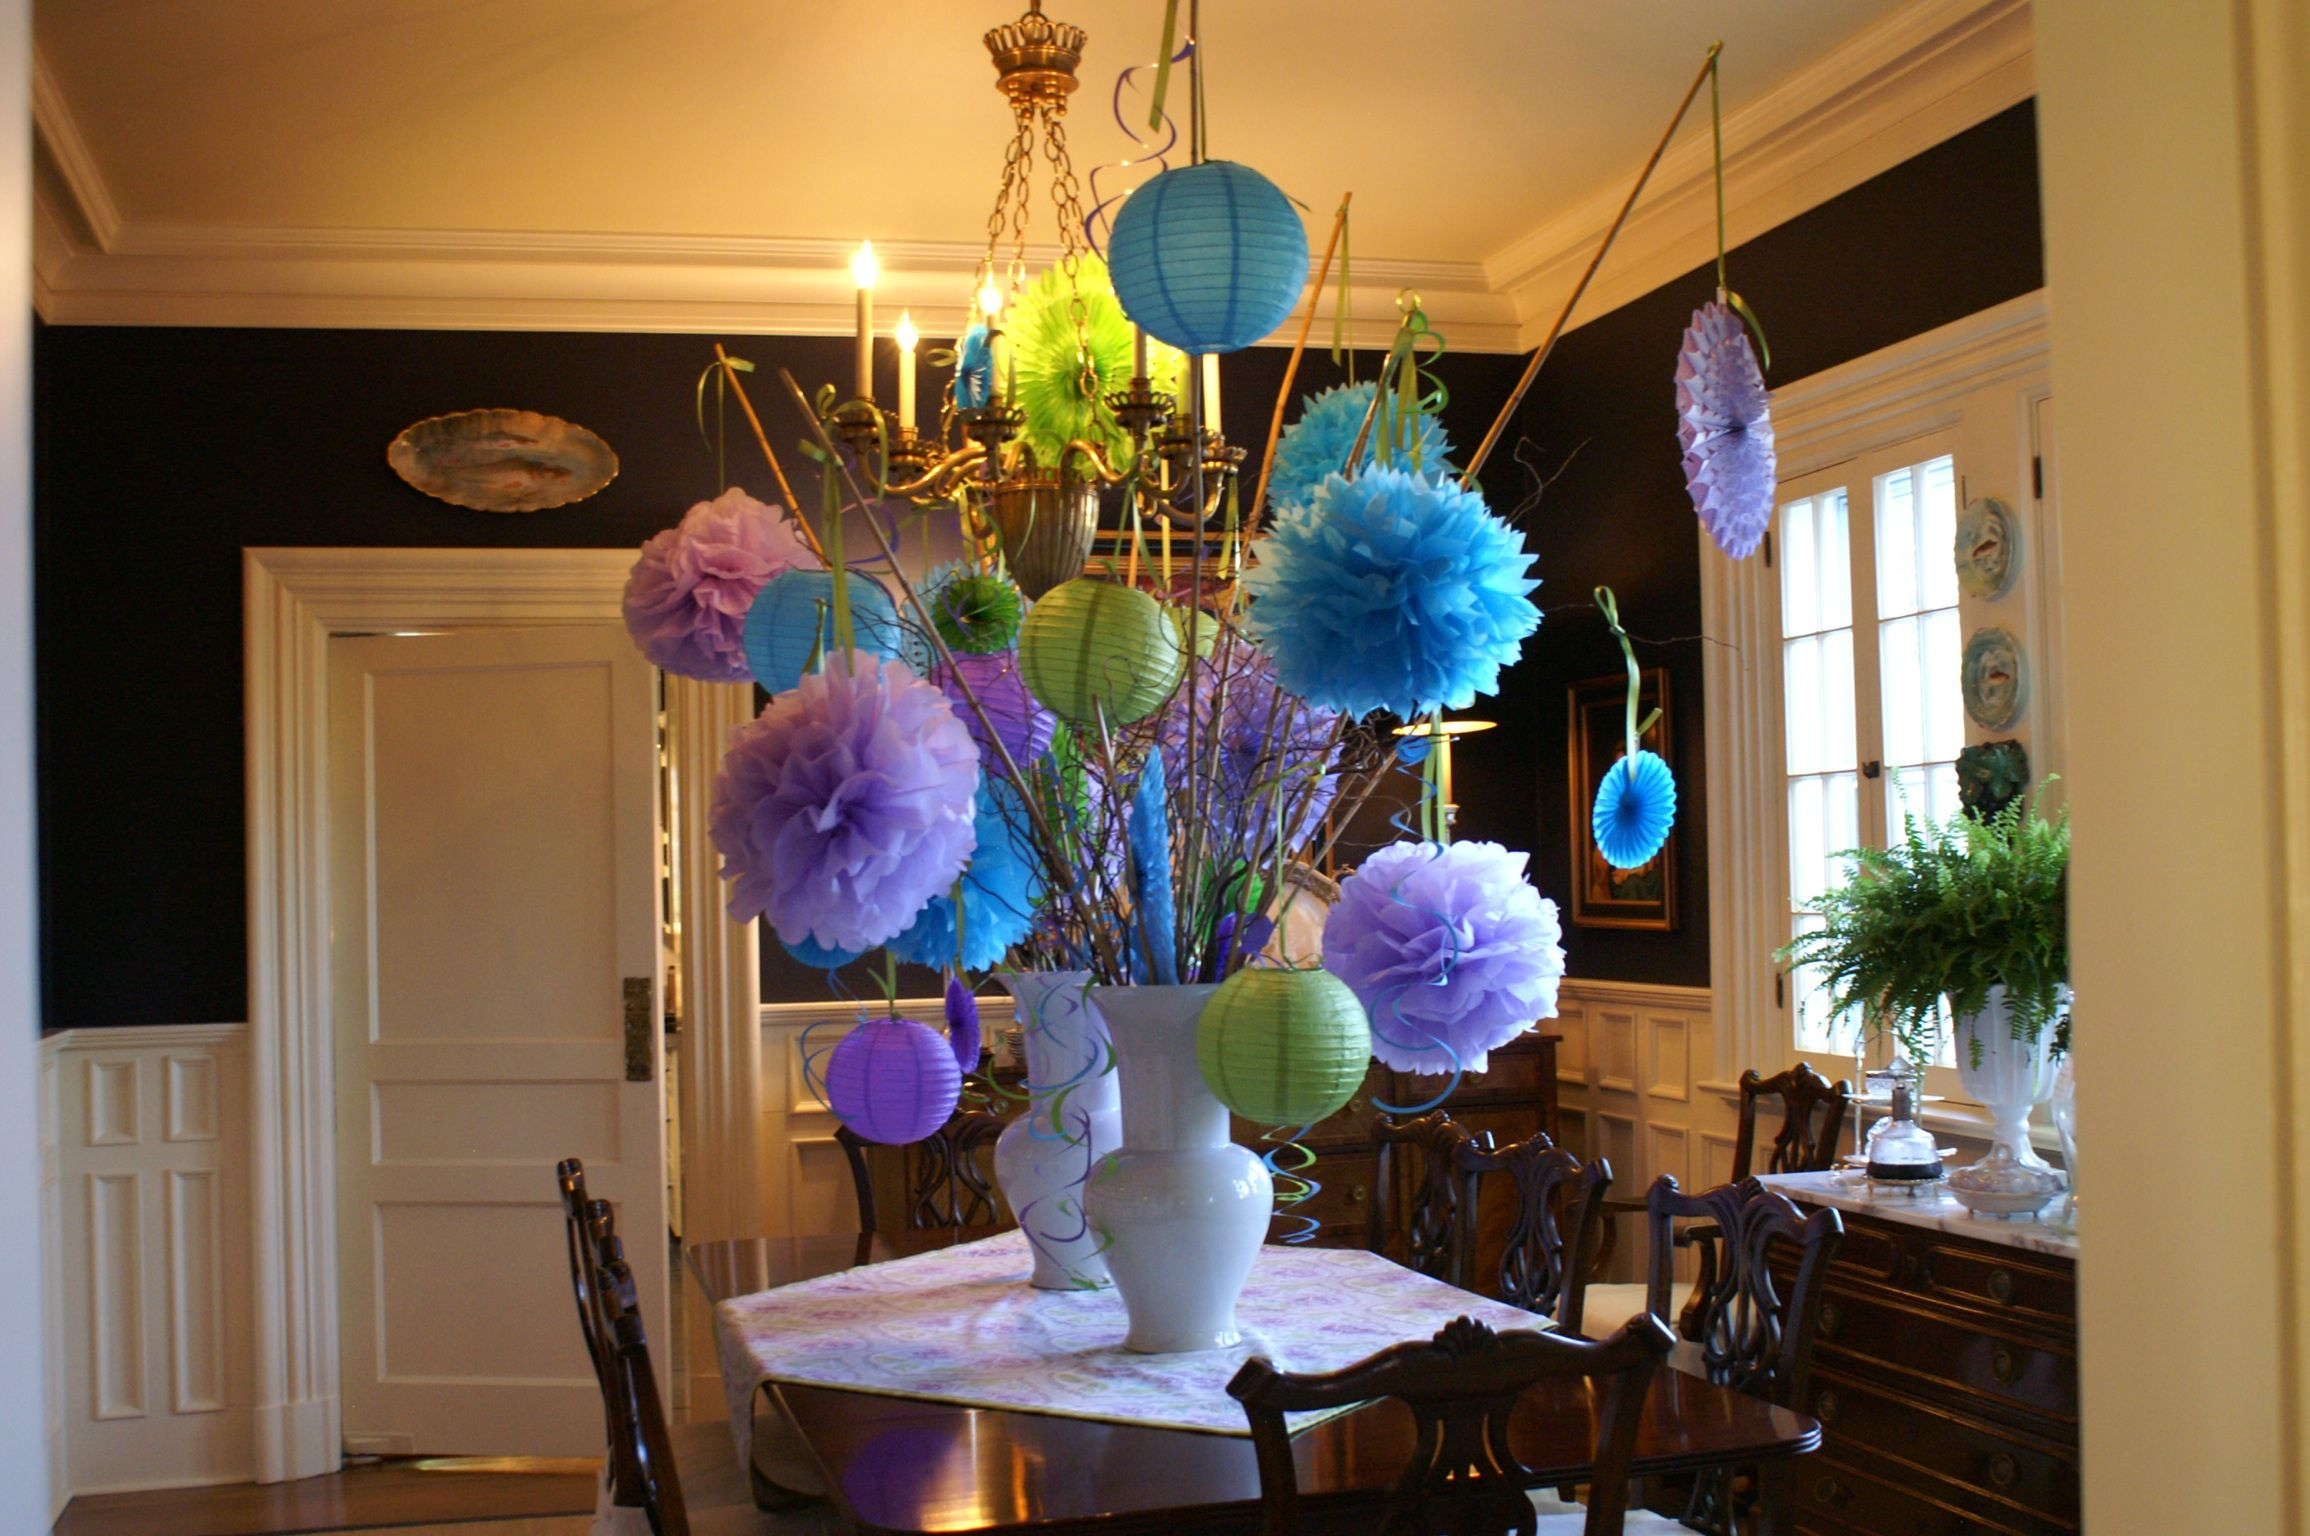 Photo SHNS Courtesy Nell Hills Paper Lanterns And Tissue Flowers Make For A Super Easy Centerpiece The Dining Room Table